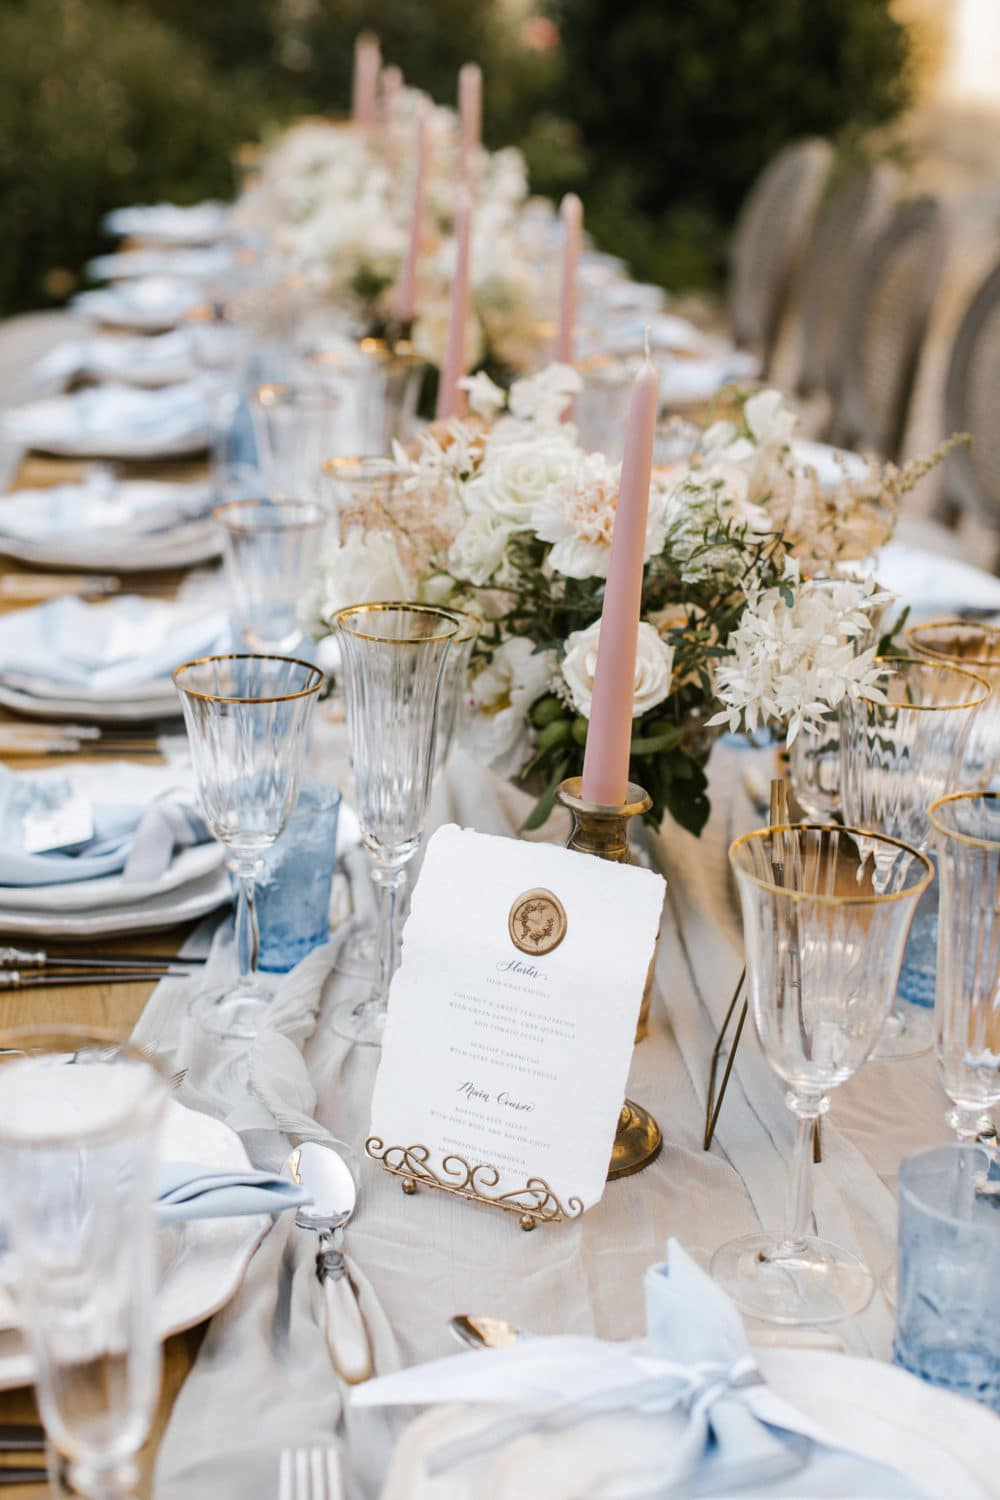 blush and soft blue tones for a romantic outside wedding dinner